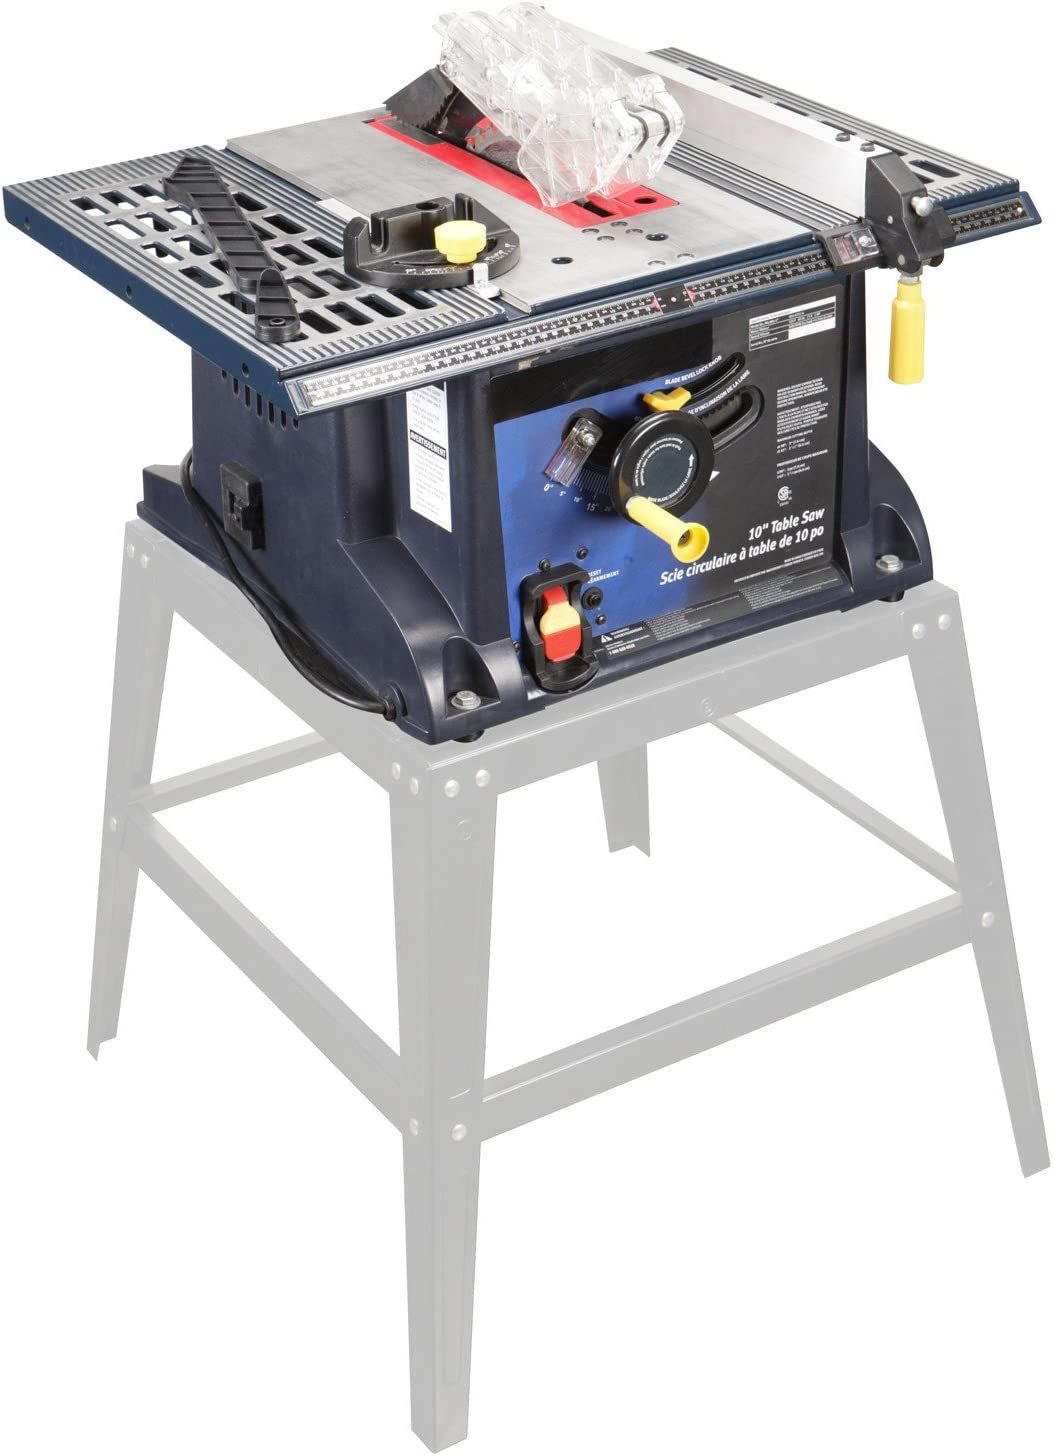 LETBUY-TECH 4699094 Table Saws product image 1